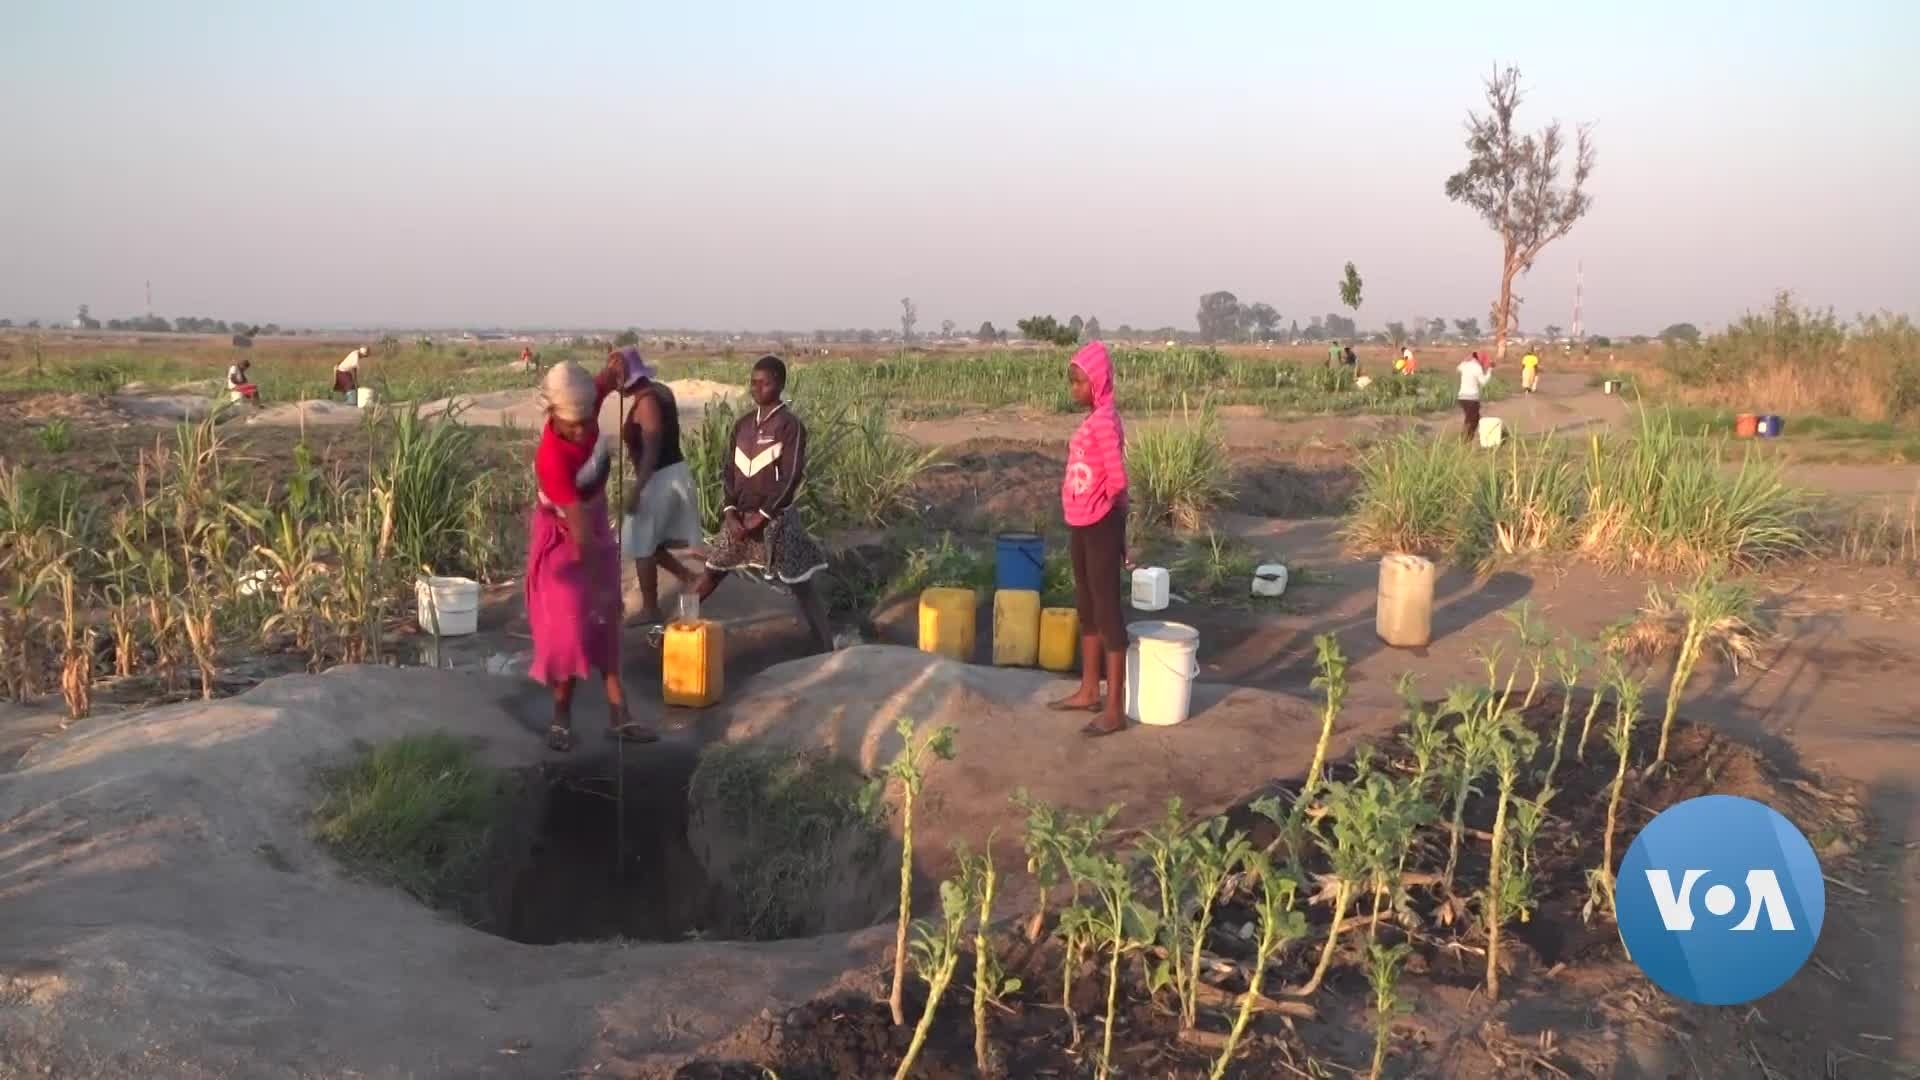 Harare's Water Shortages Force Community to Use Graveyard Wells